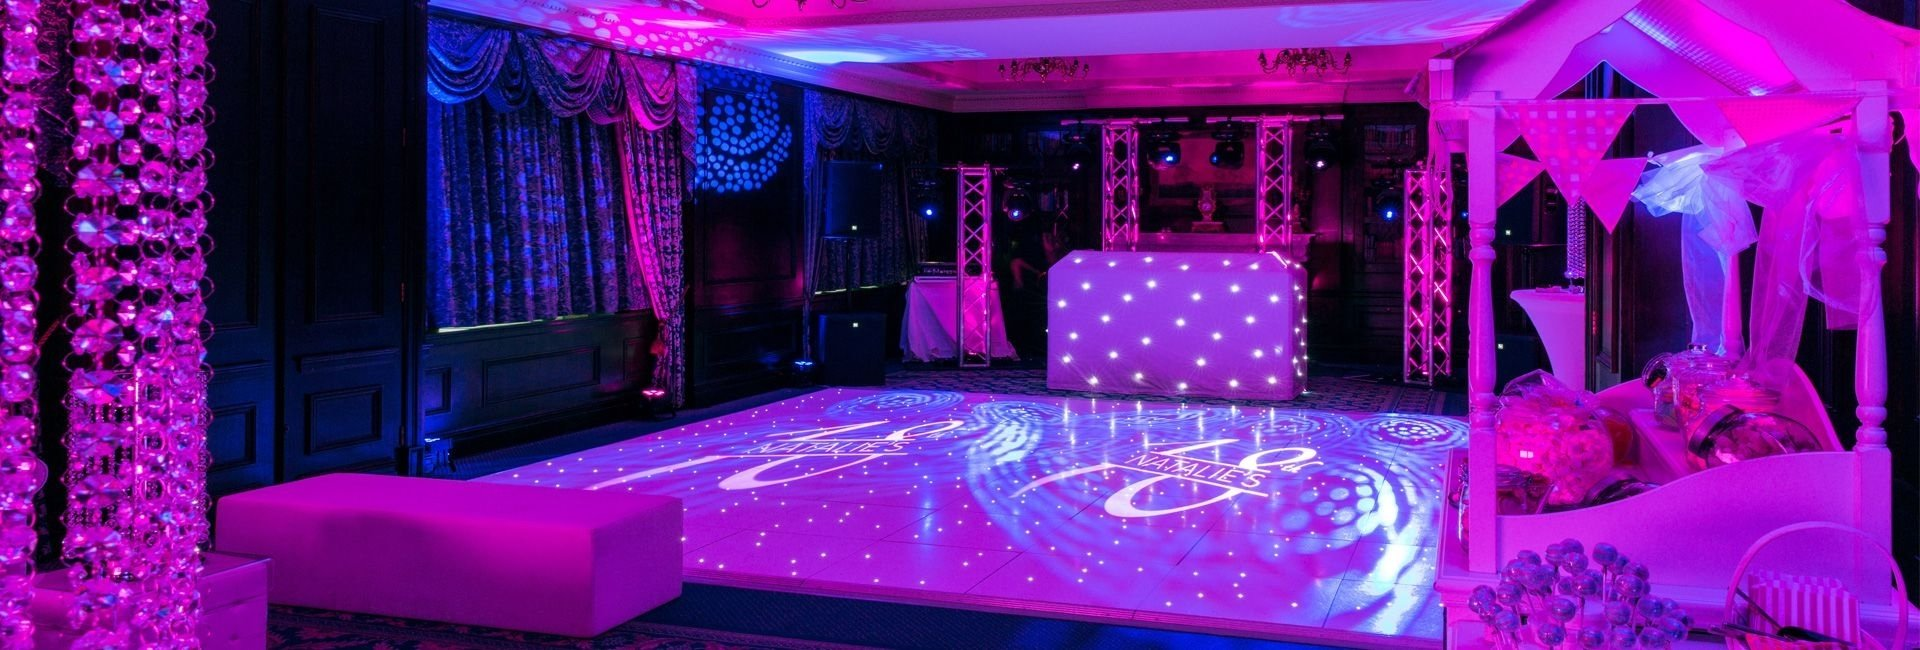 10 Perfect Ideas For 16Th Birthday Party nightclub dj package for a party in a venue in hertfordshire uk 2020